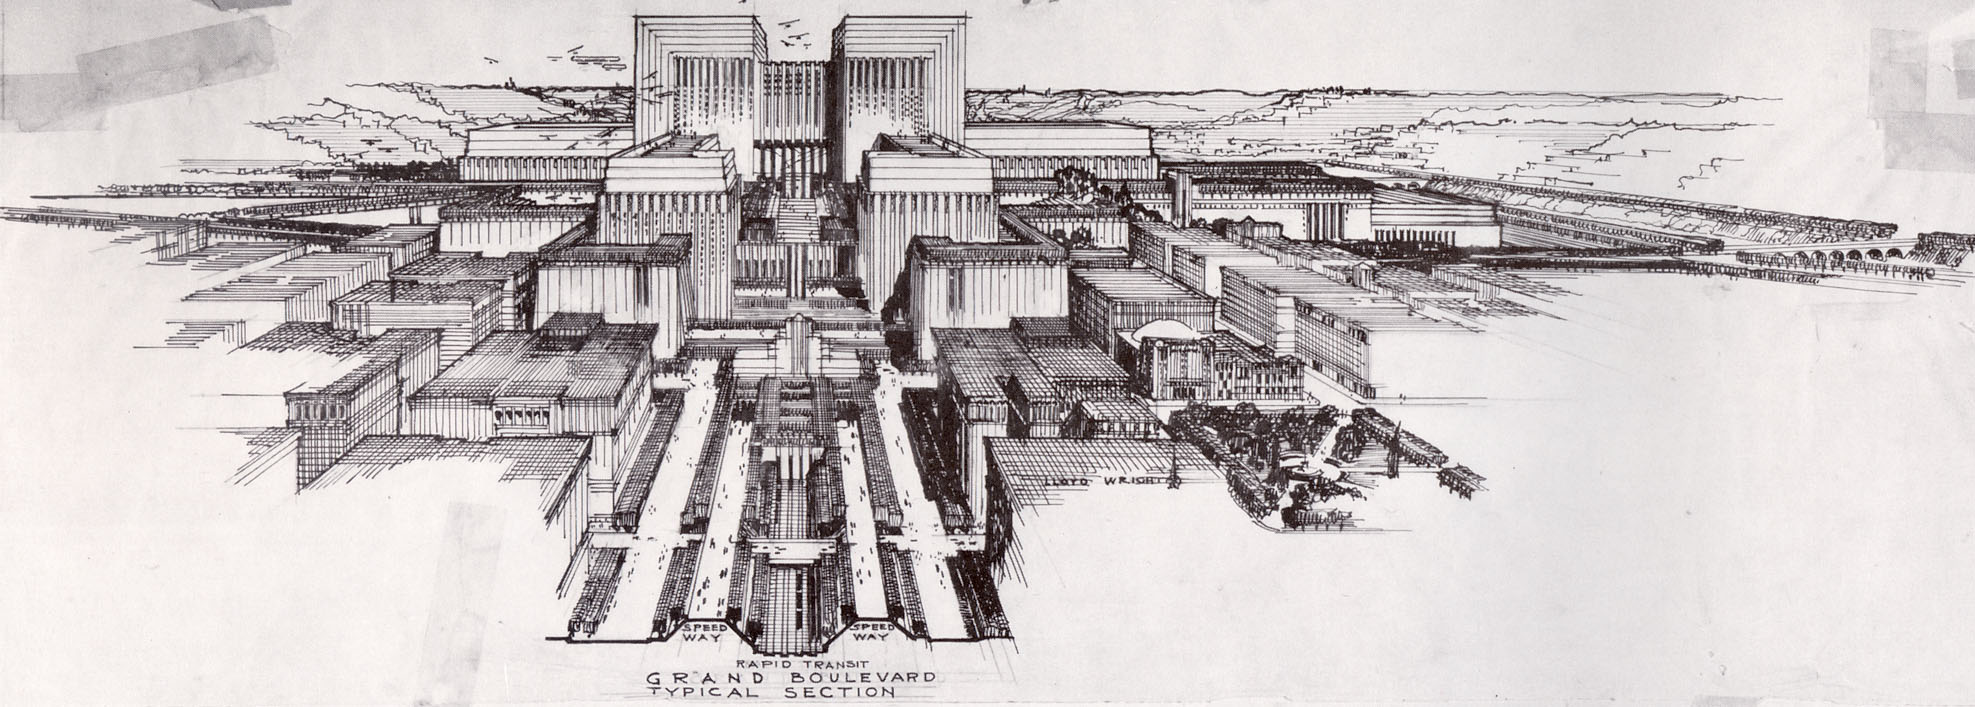 8 Unrealized Buildings That Could've Transformed American Cities